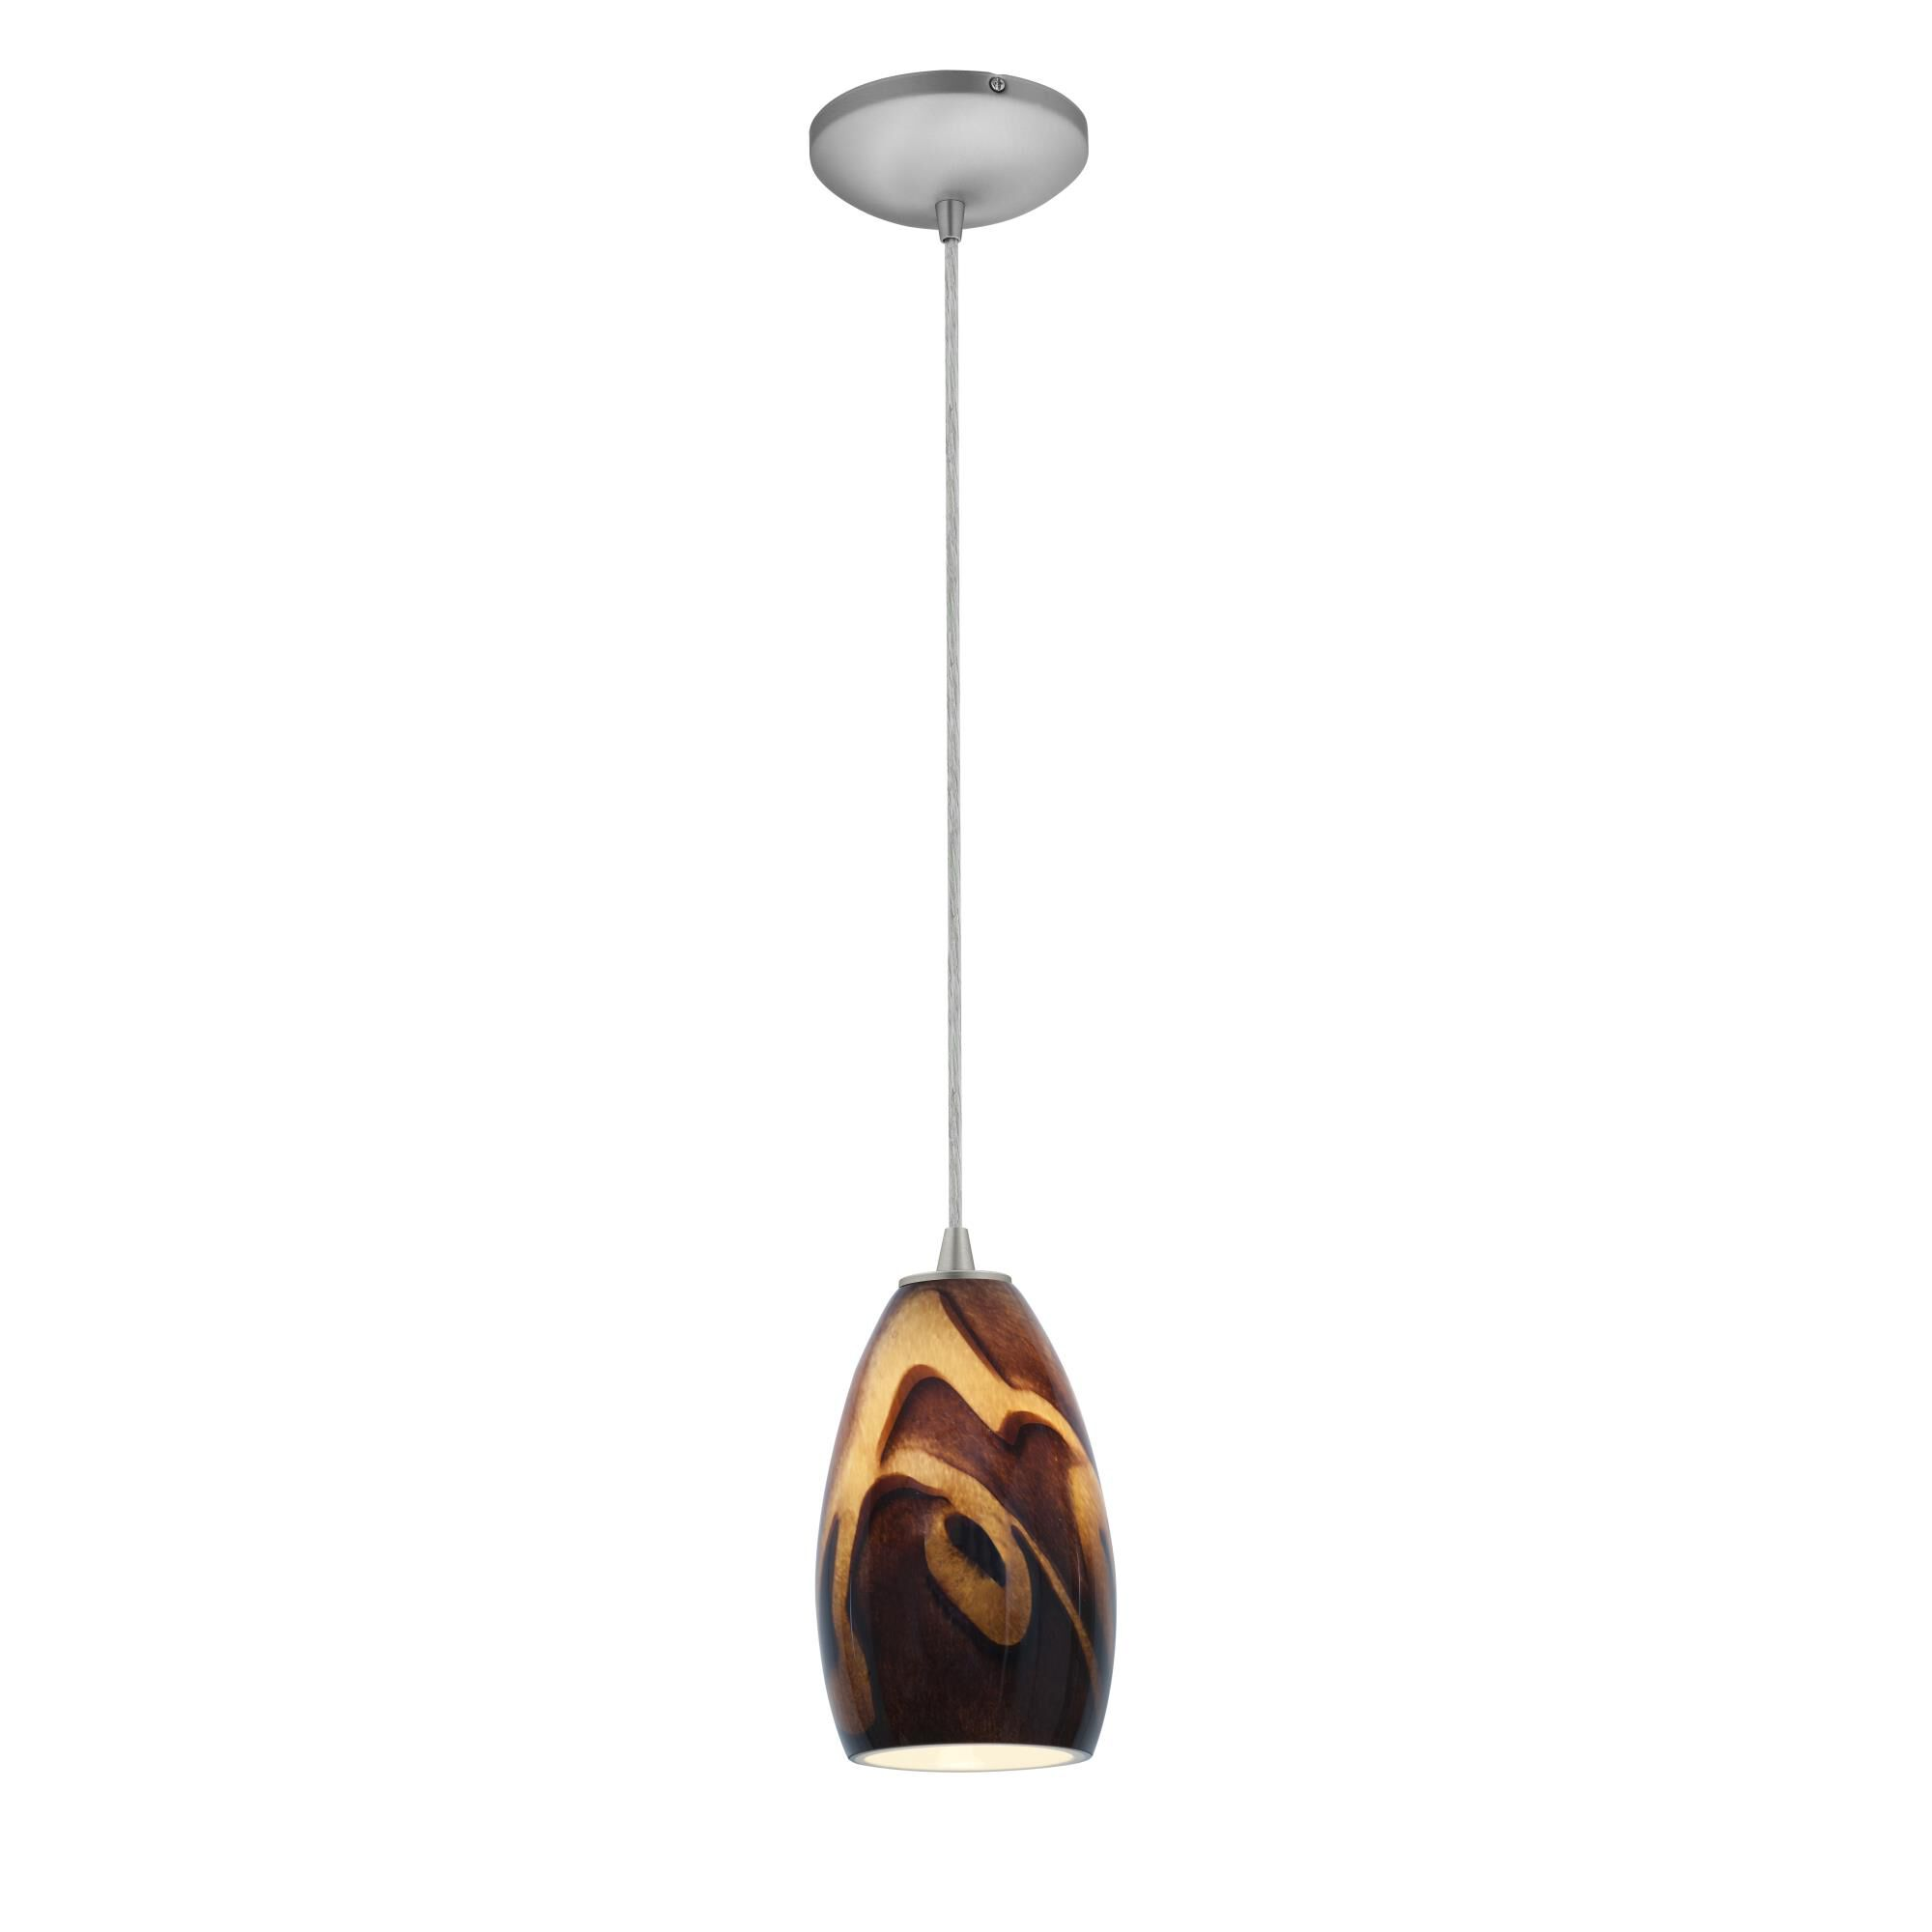 Access Lighting Champagne LED Mini Pendant Champagne 28012 3C BSICA Modern Contemporary